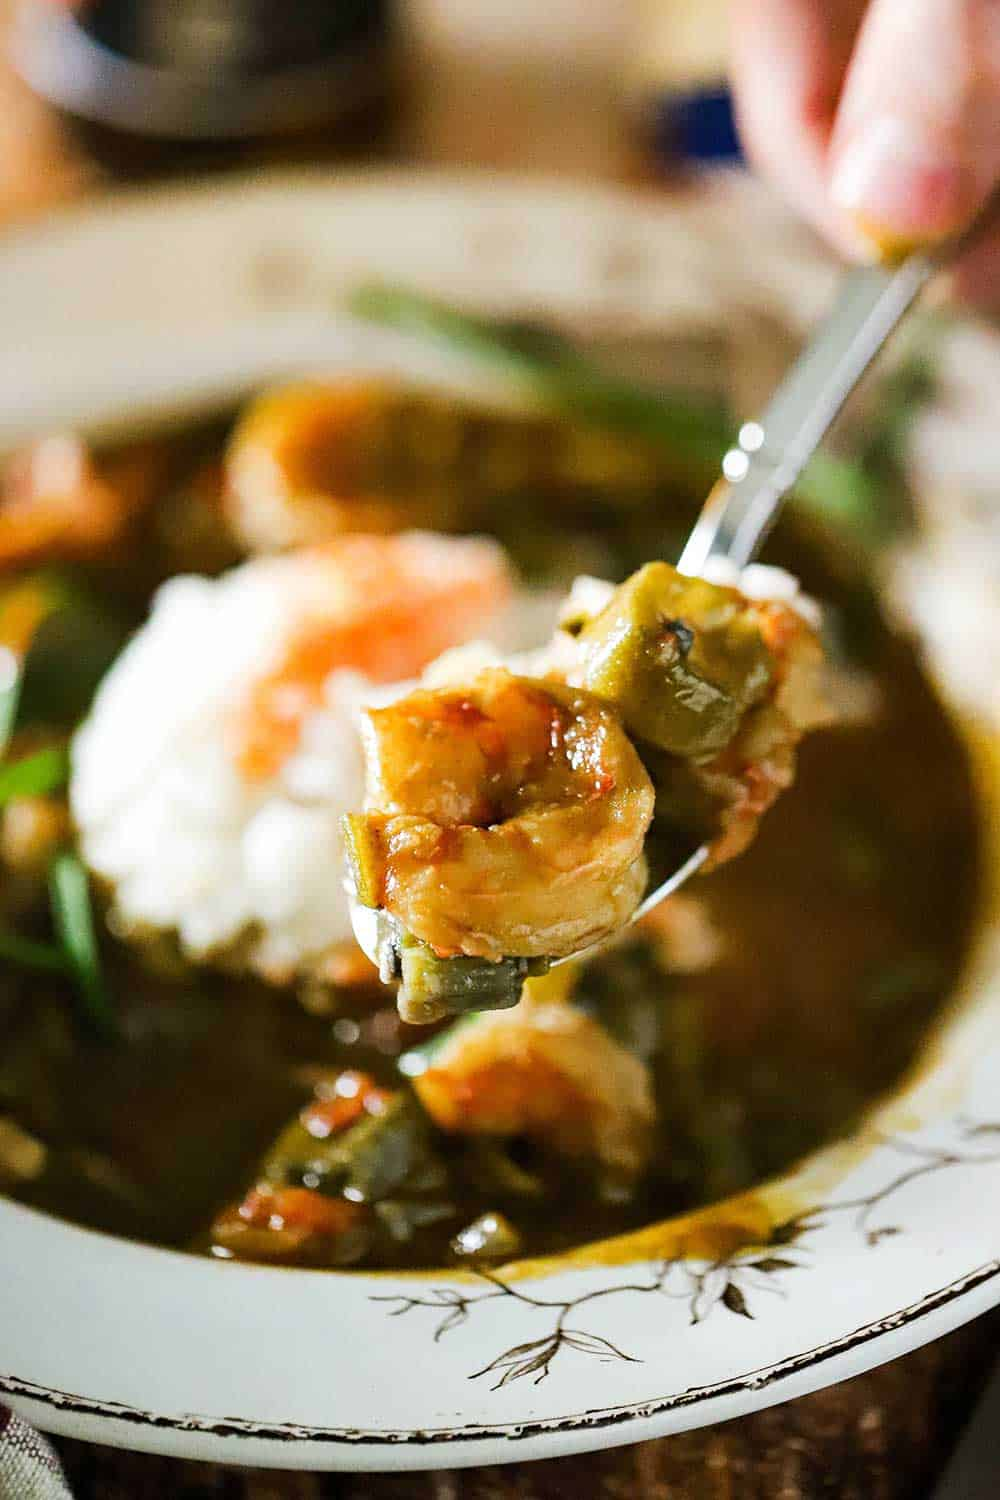 A spoon being held up holding a helping of shrimp and okra gumbo over a bowl of the same.